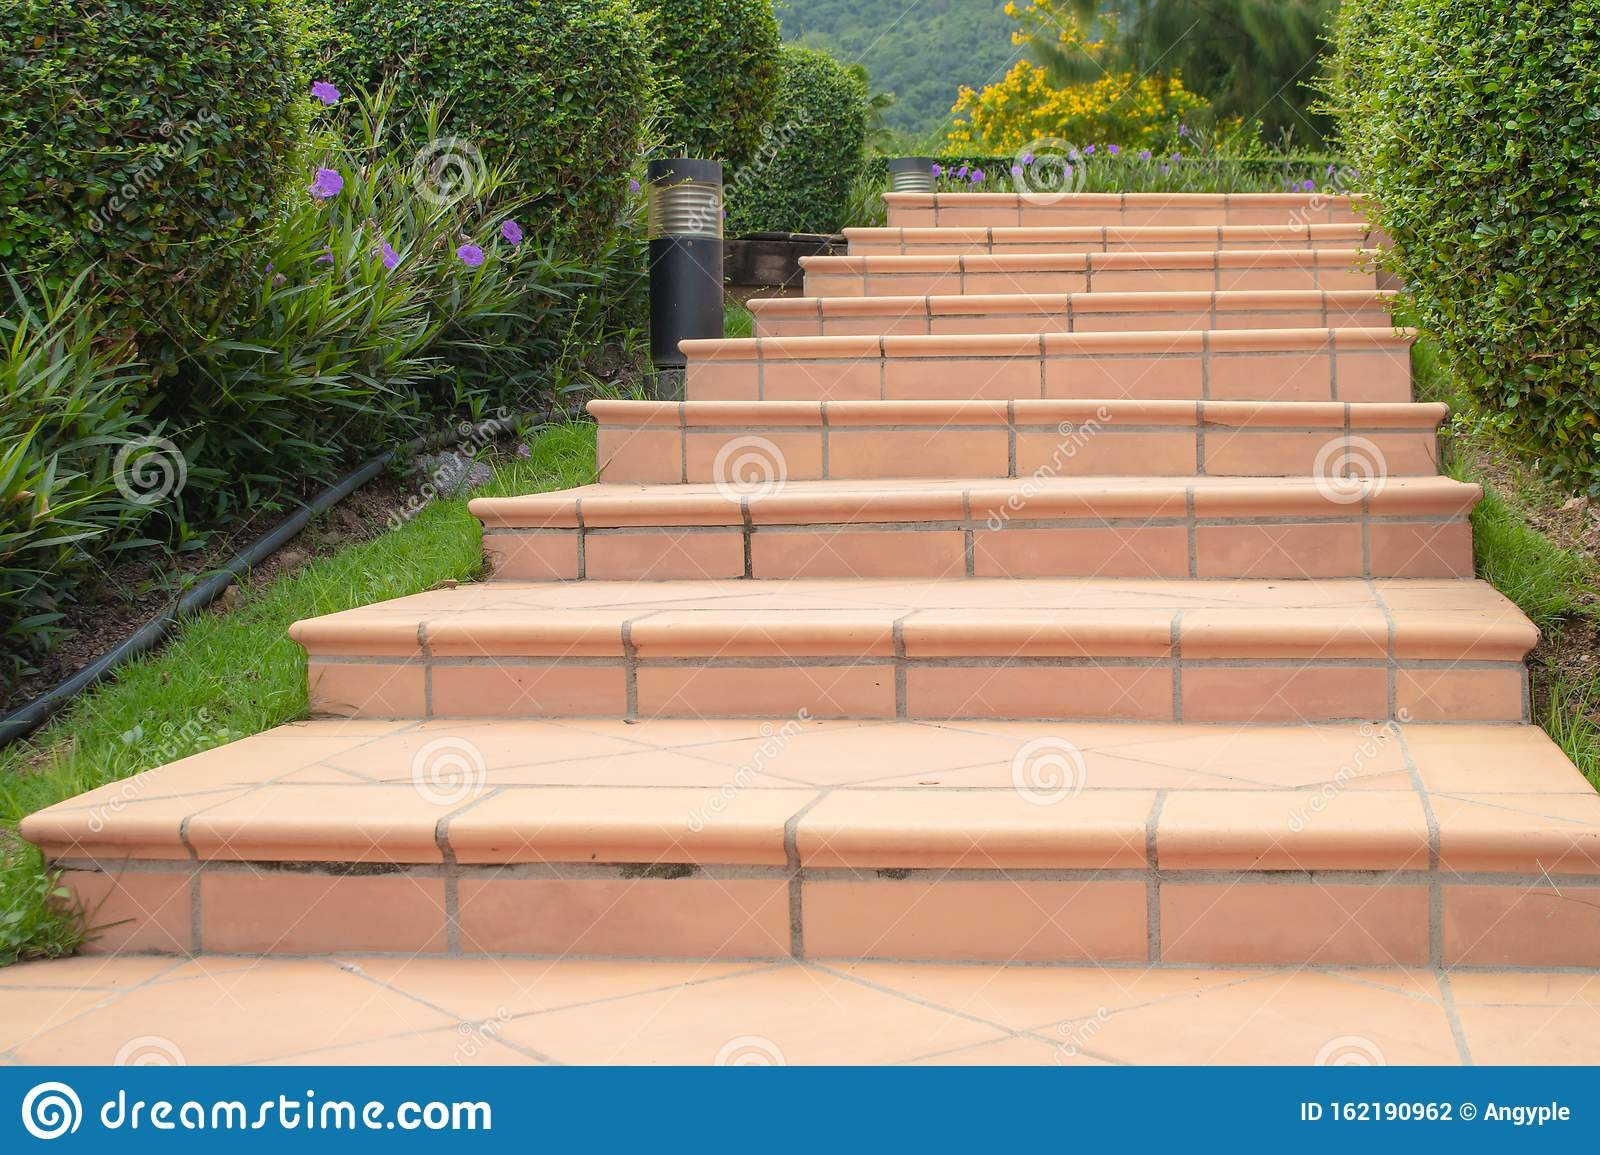 Concrete Stairs Or Pathway Flanked With Green Trees In Garden | Concrete Stairs Design Outdoor | Beautiful | Roof Deck | Storage Underneath | Exterior | Modern